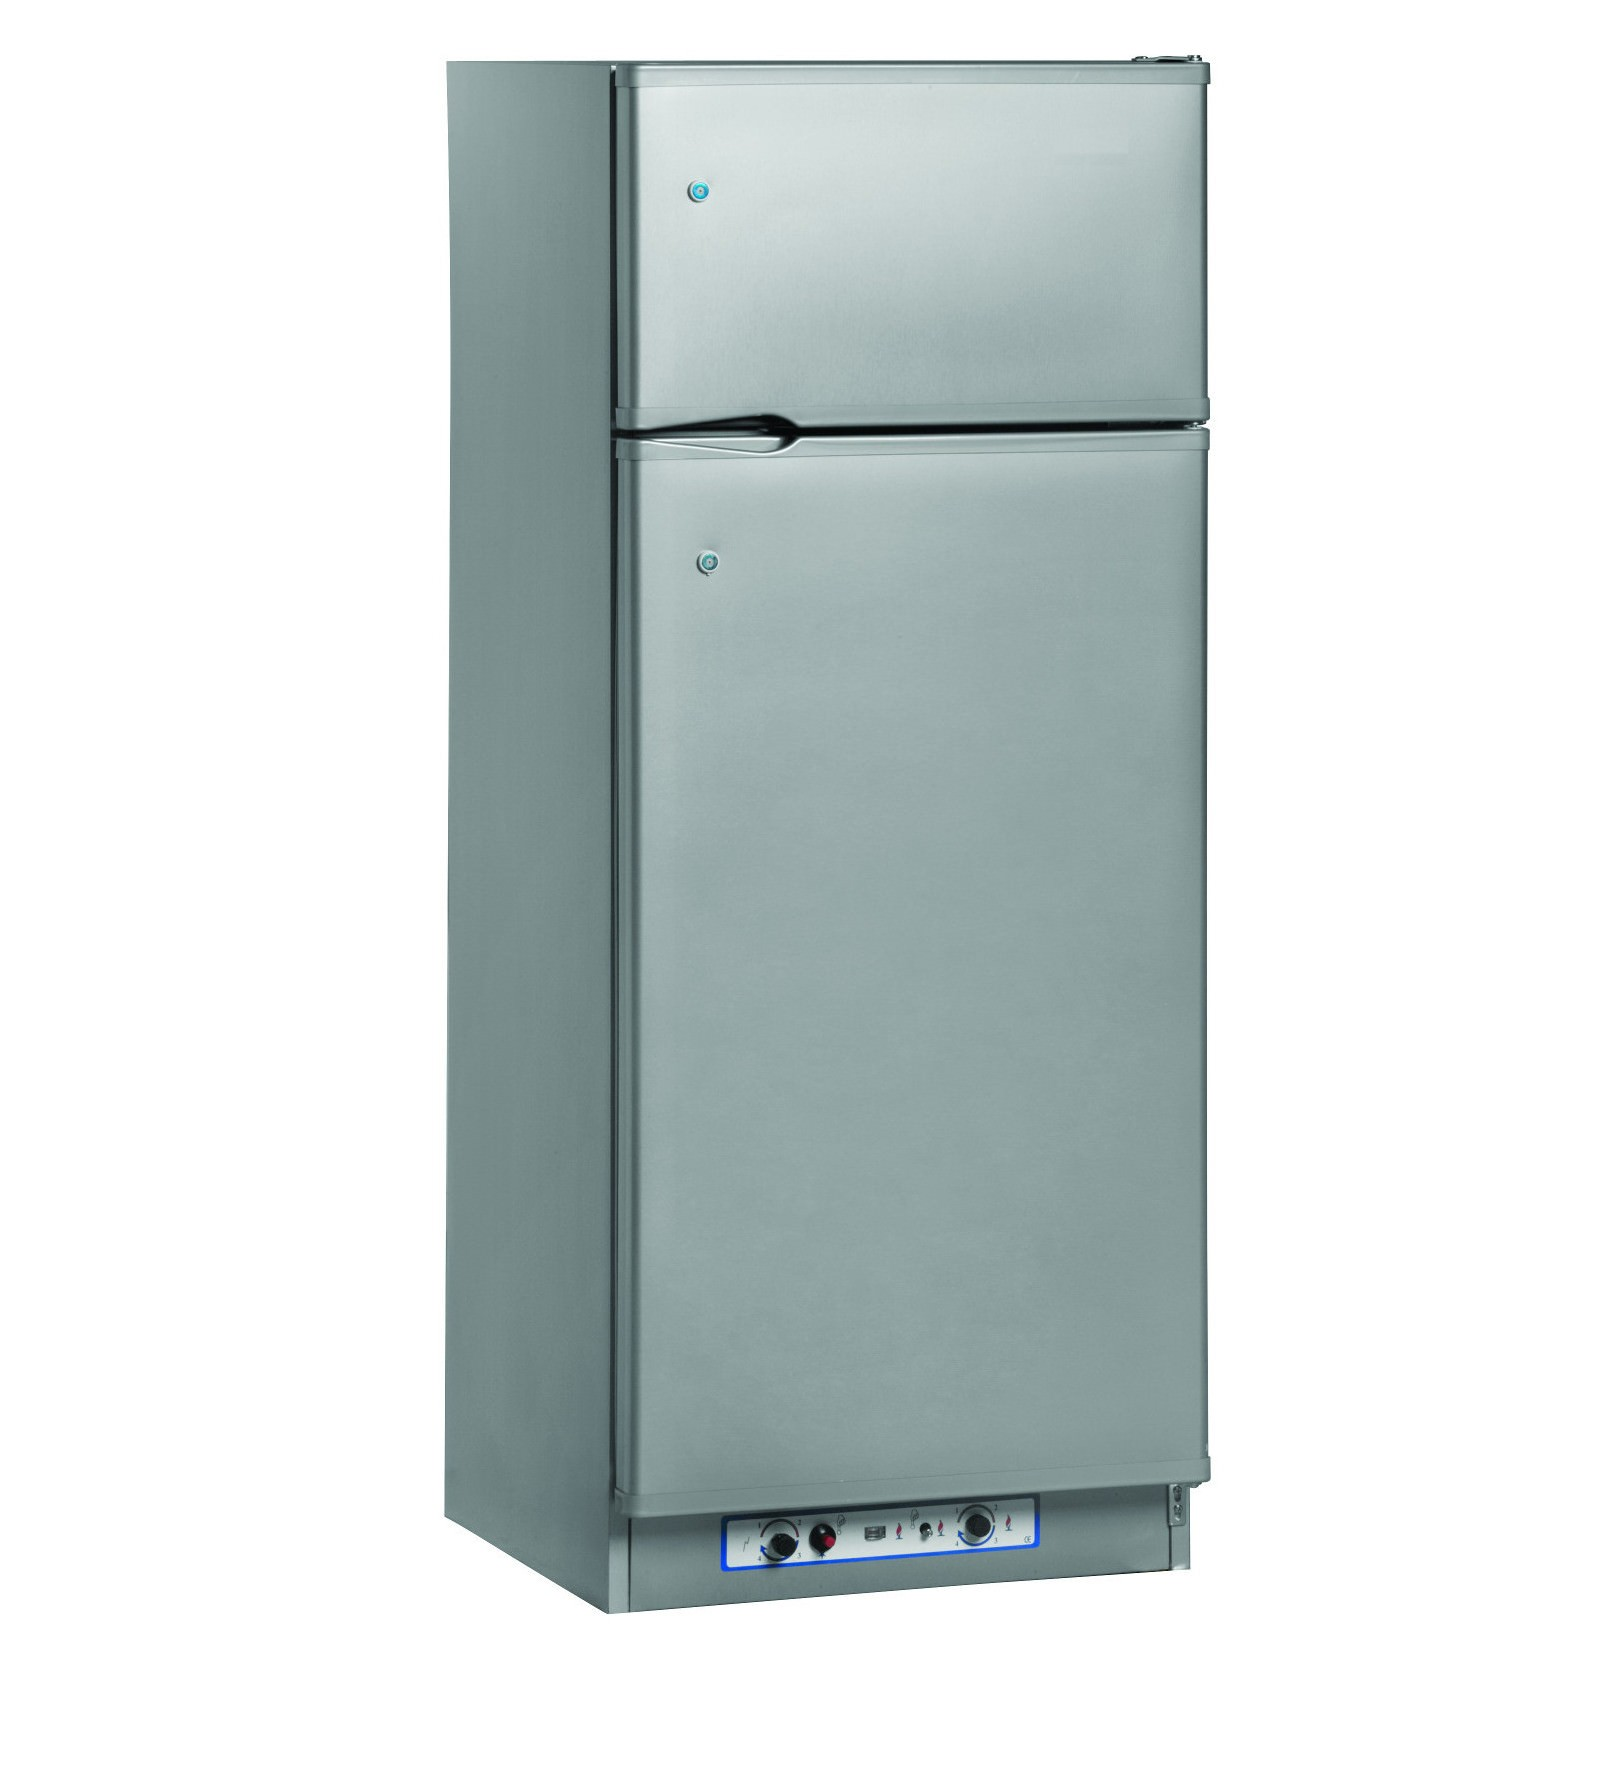 Rhino GR265D Gas/Electric/Paraffin Cooler & Freezer Combo